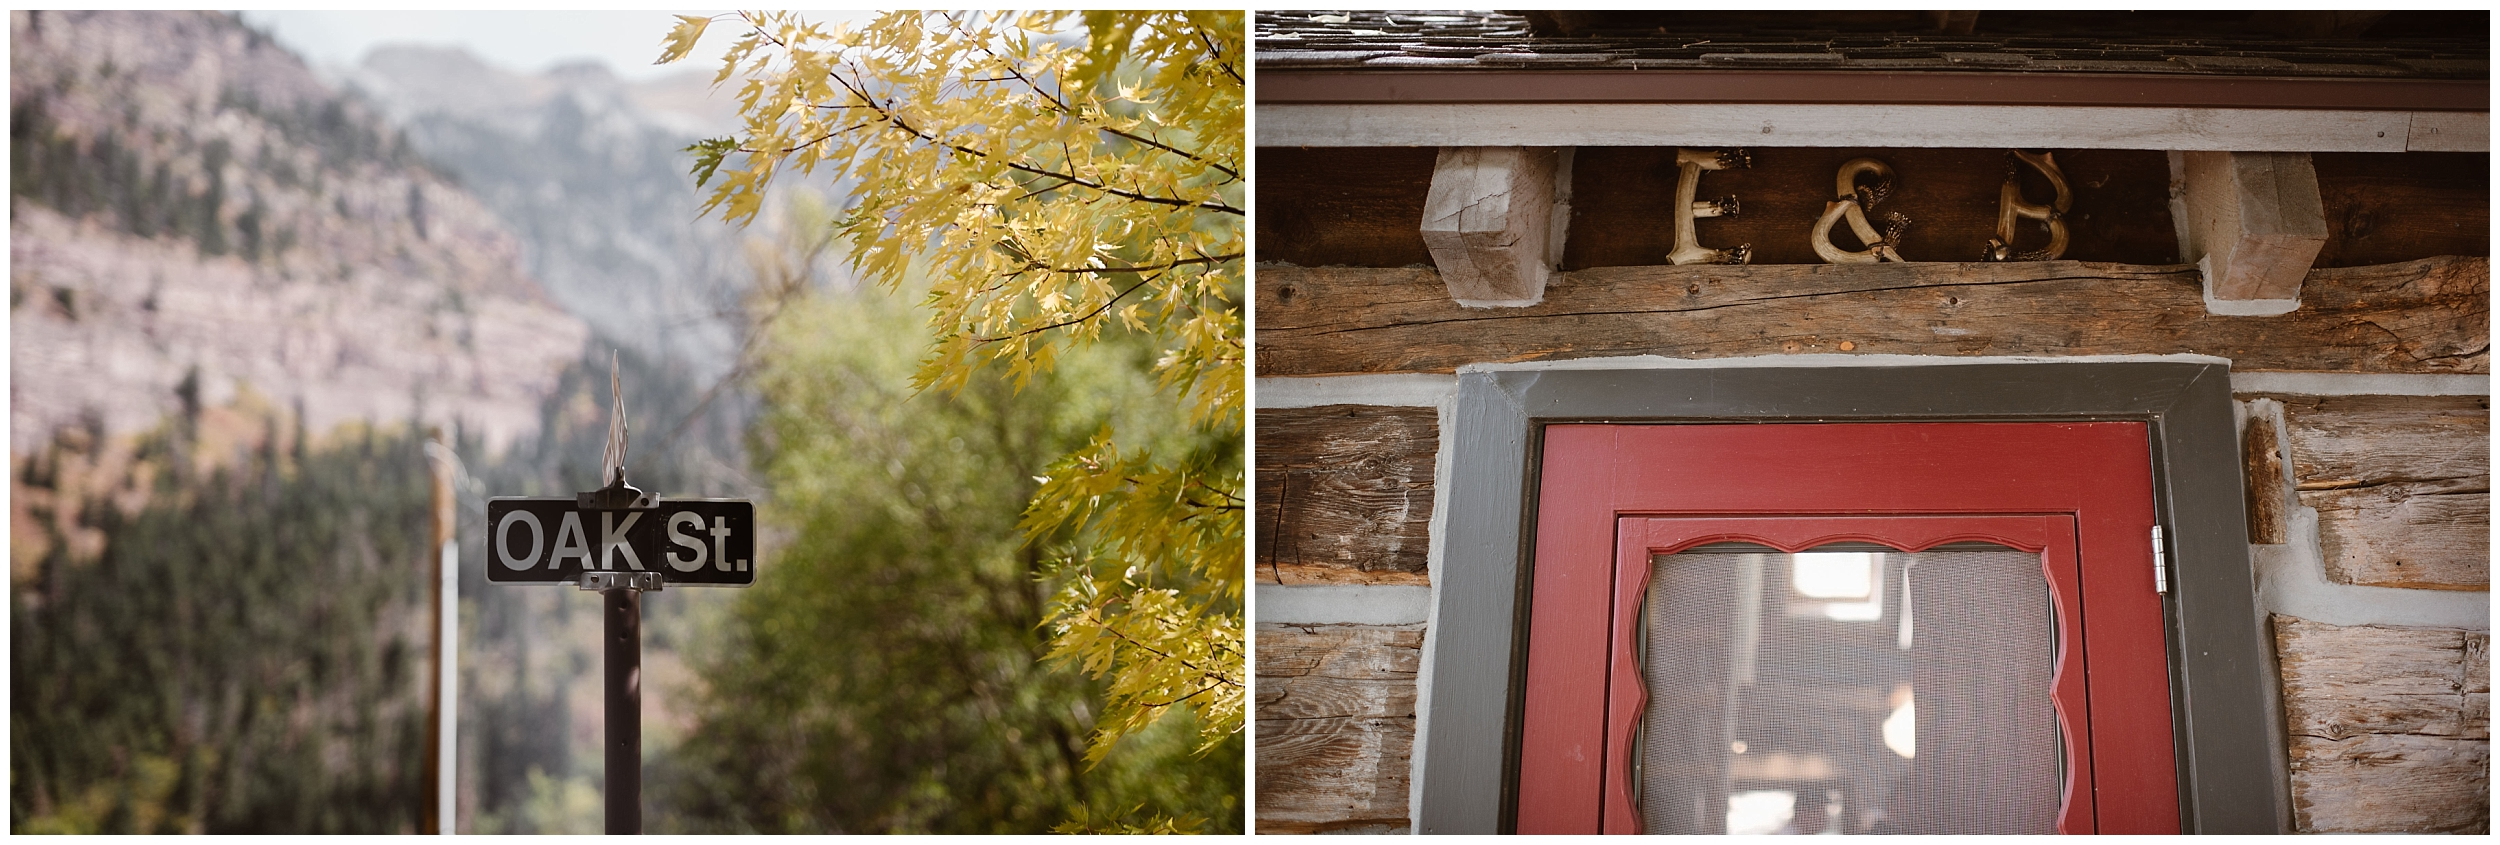 "In these side-by-side elopement photos captured by elopement wedding photographer Adventure Instead, the Ouray, Colorado cabin is shown . In the image on the left, a quaint street sign that says ""oak street"" is shown, and in the image to the right, the bright red door with dark trim has an ""E+B"" hanging over it, just one of the unique eloping ideas that Brian and Ernie included in their colorado elopement."